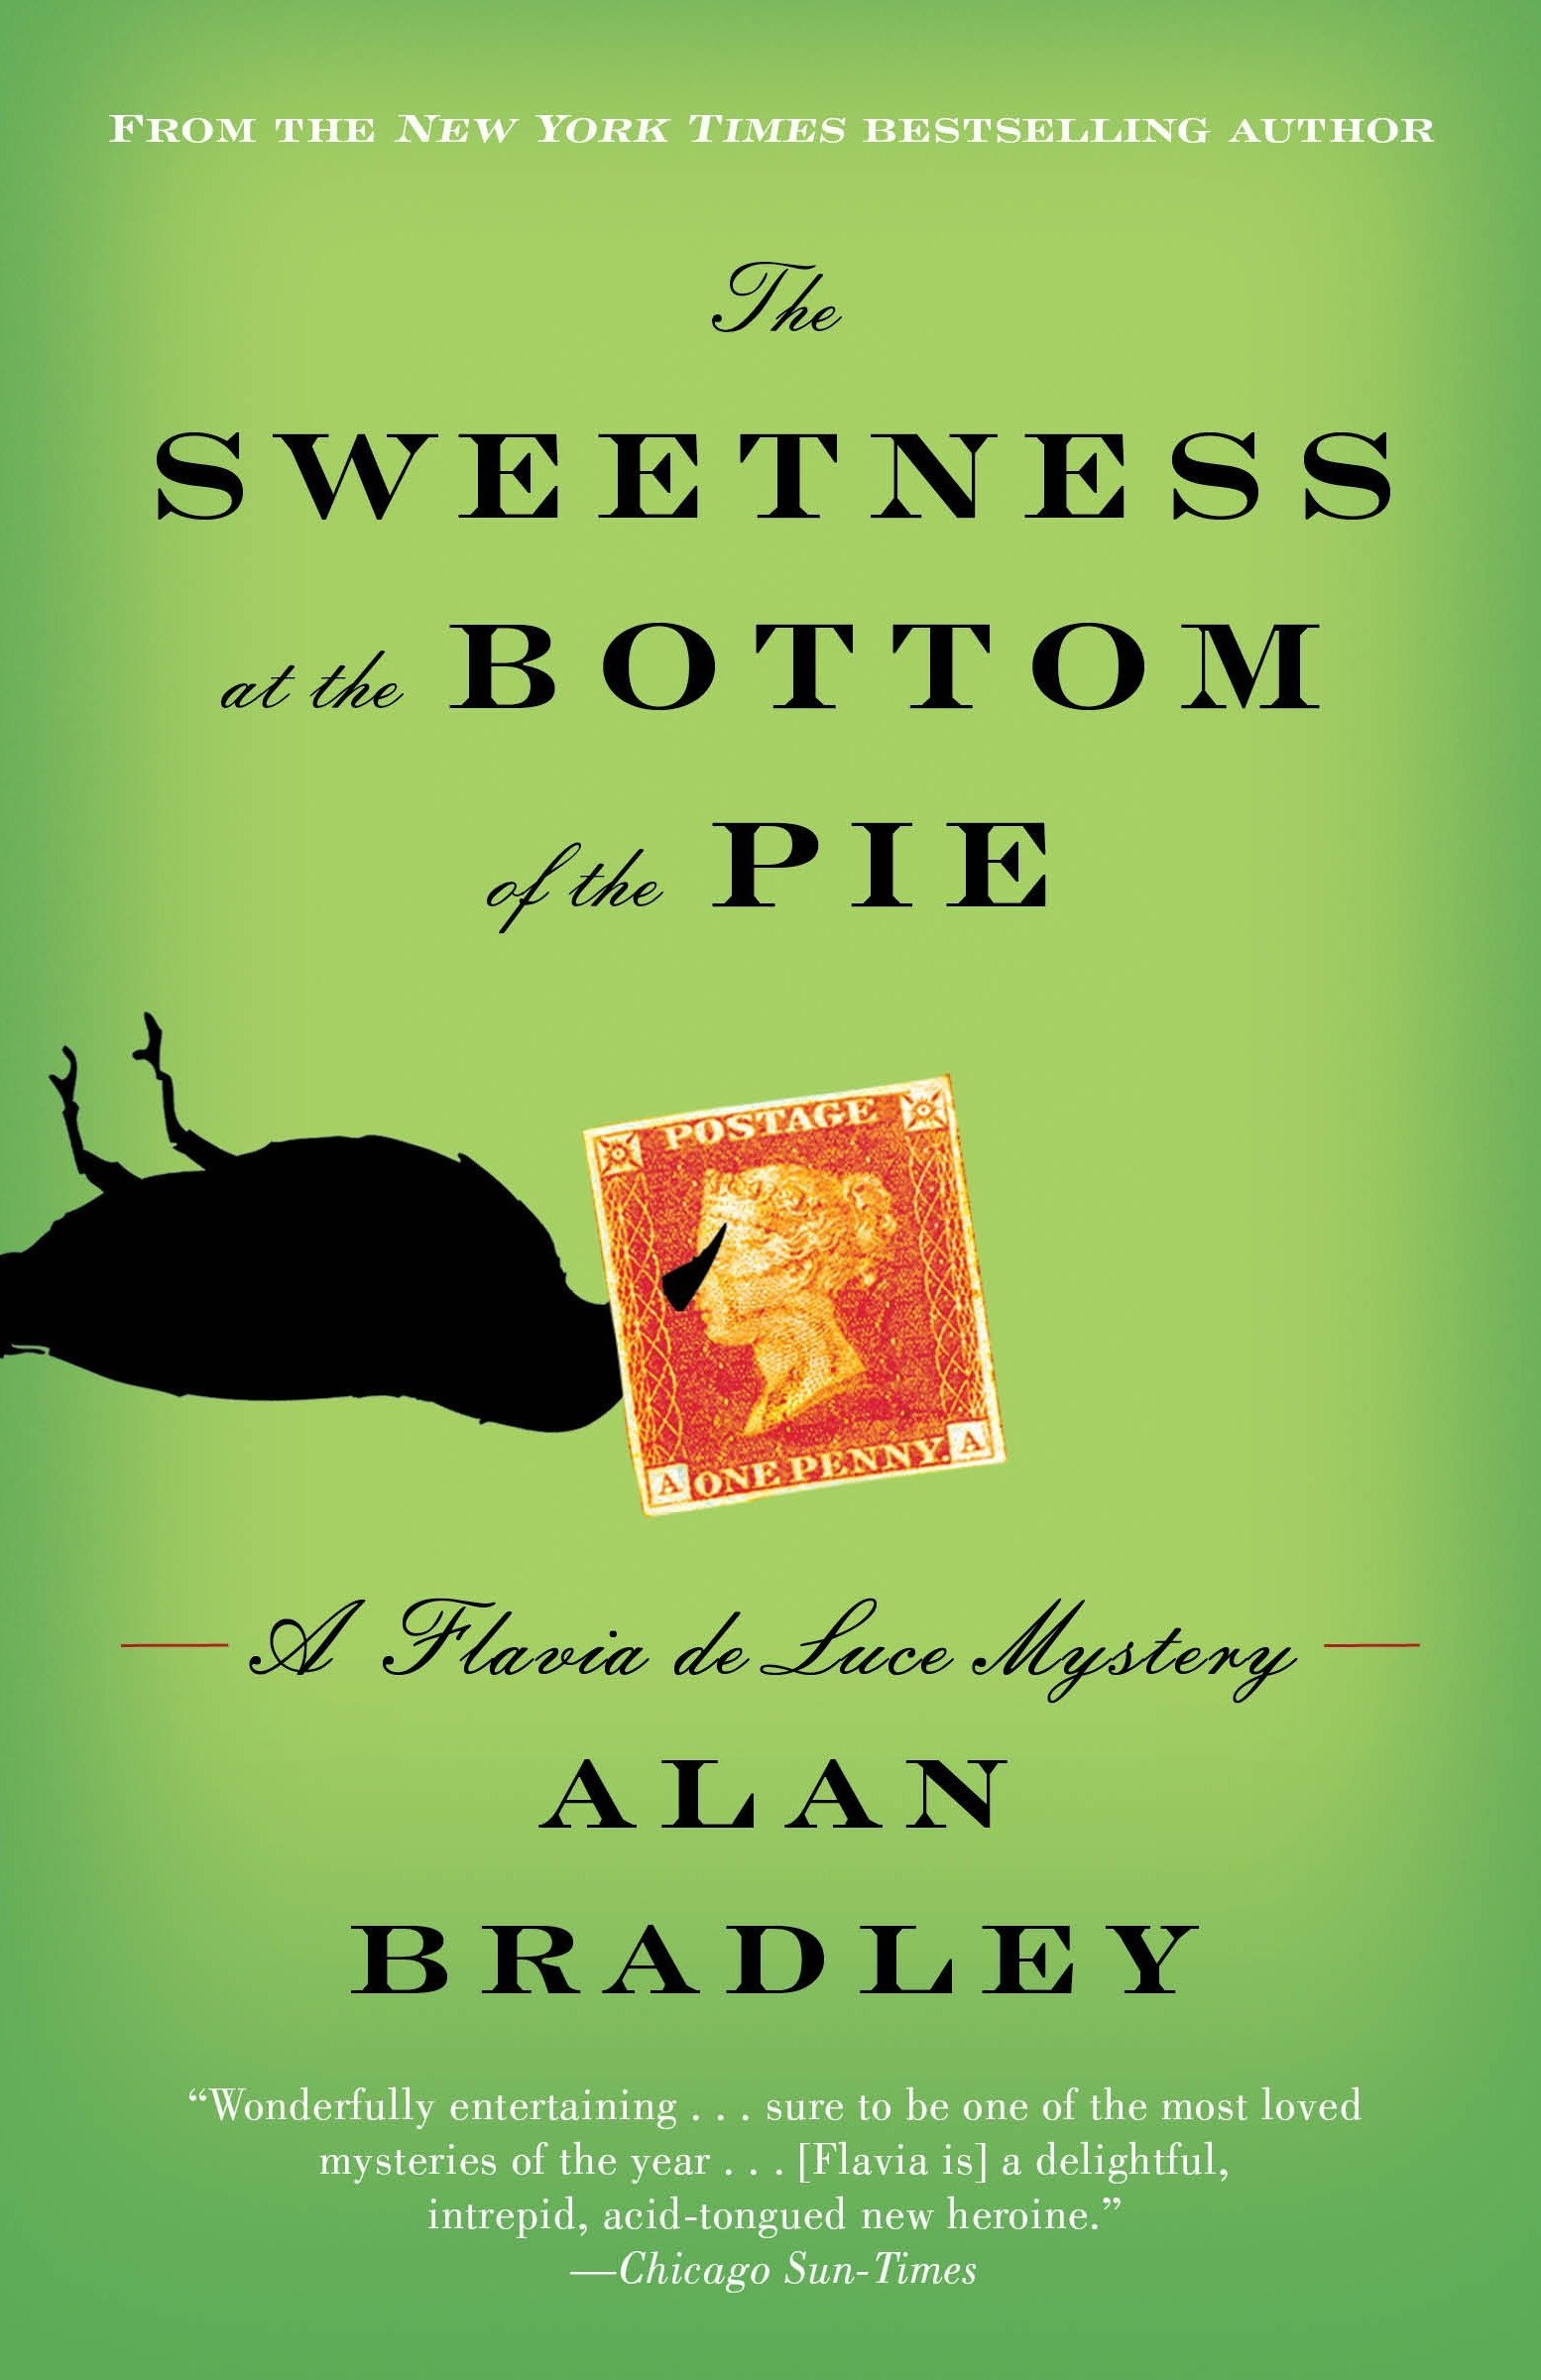 Mystery Readers Book Club: The Sweetness at the Bottom of the Pie